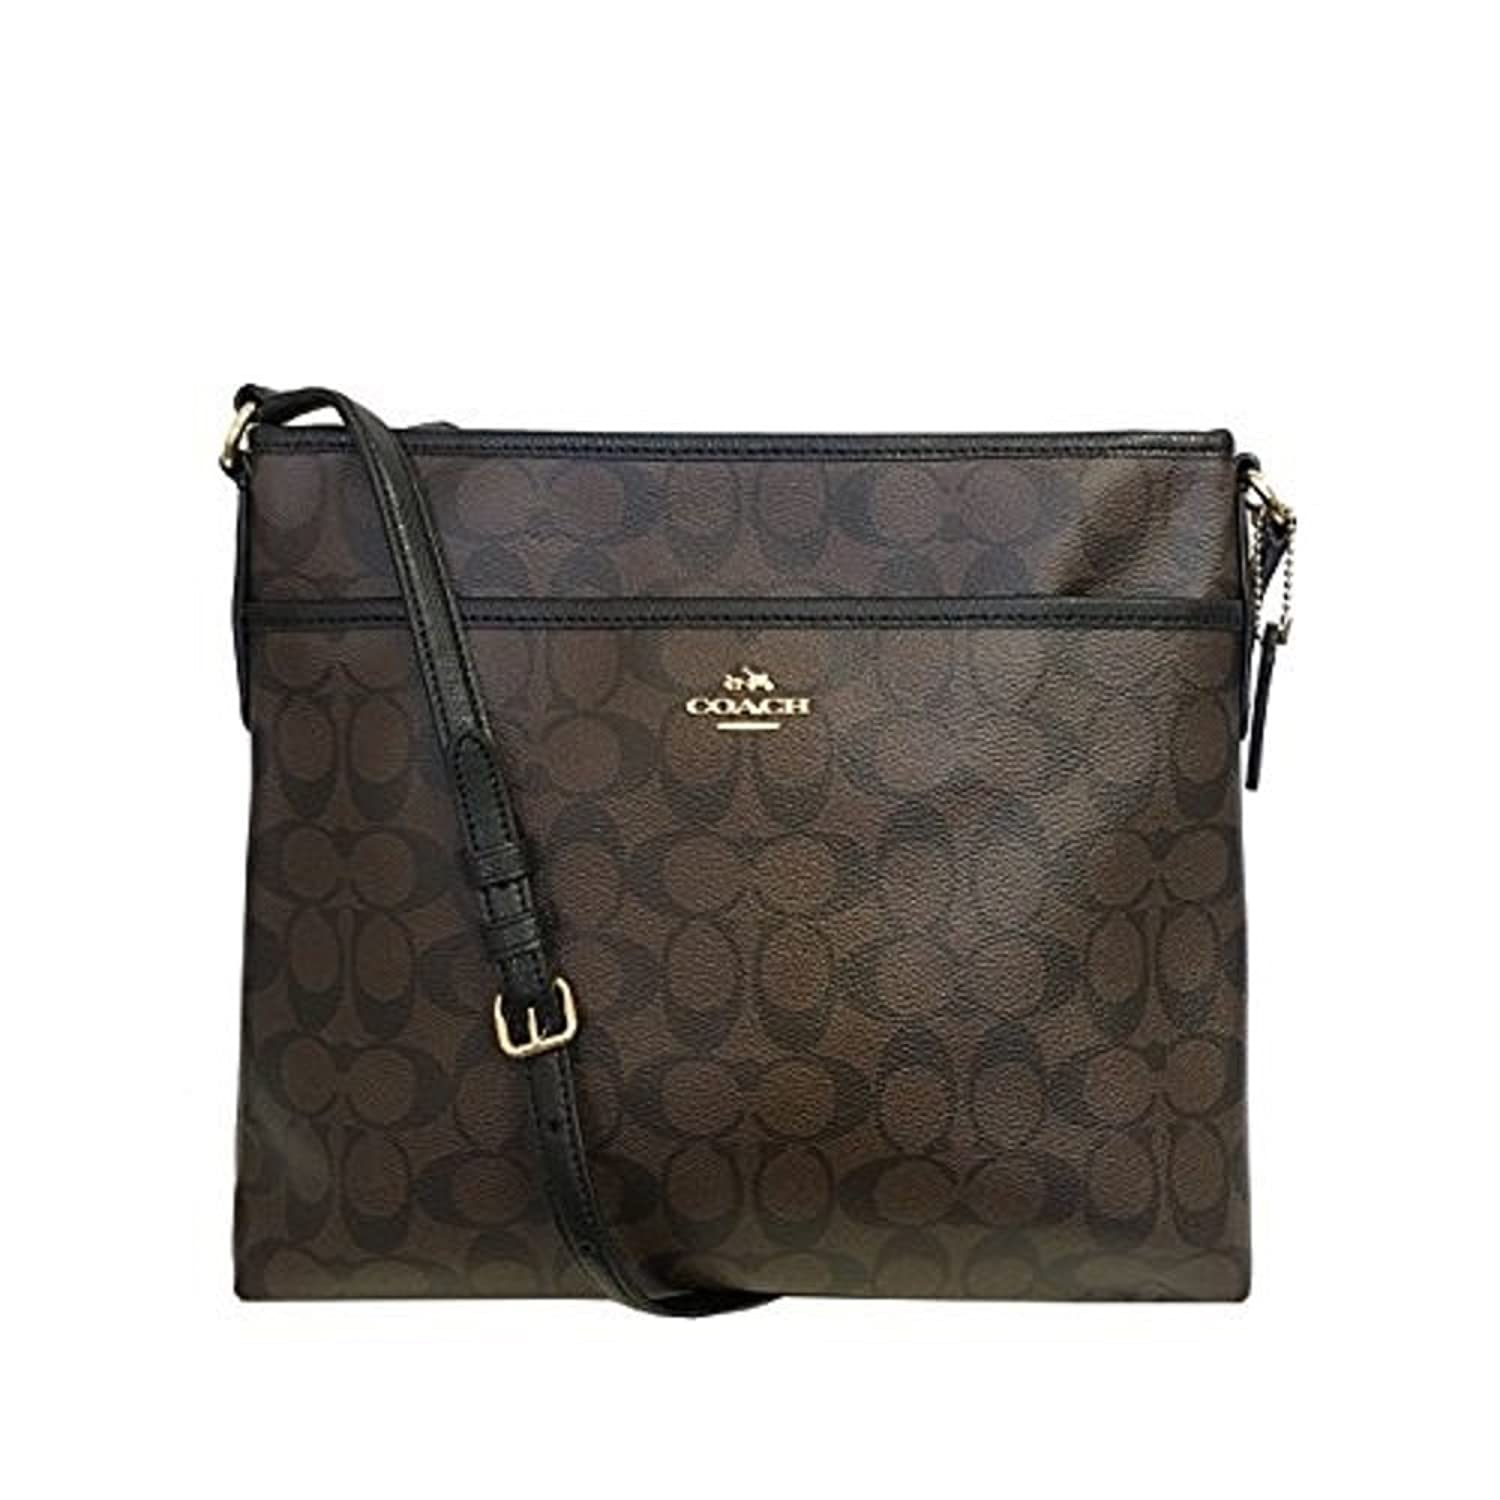 Coach Signature File Crossbody/Messenger Bag F58297: Handbags ...